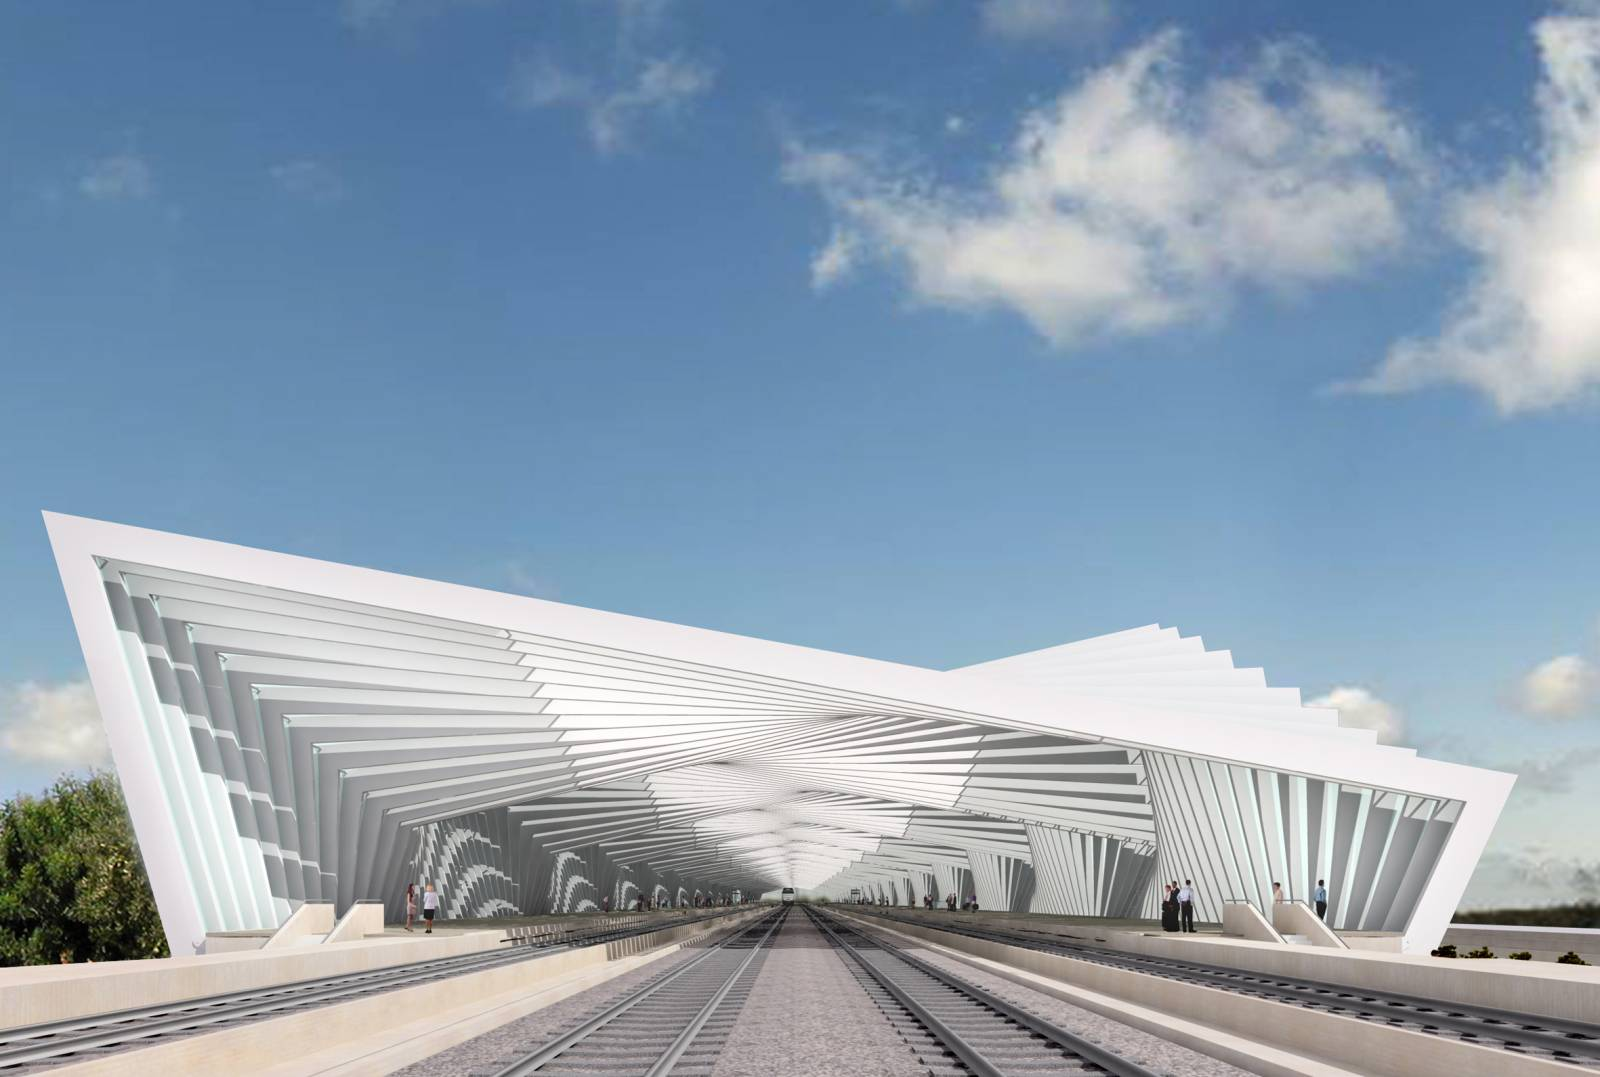 Wearena reggio emilia high speed train station av for Mobili reggio emilia